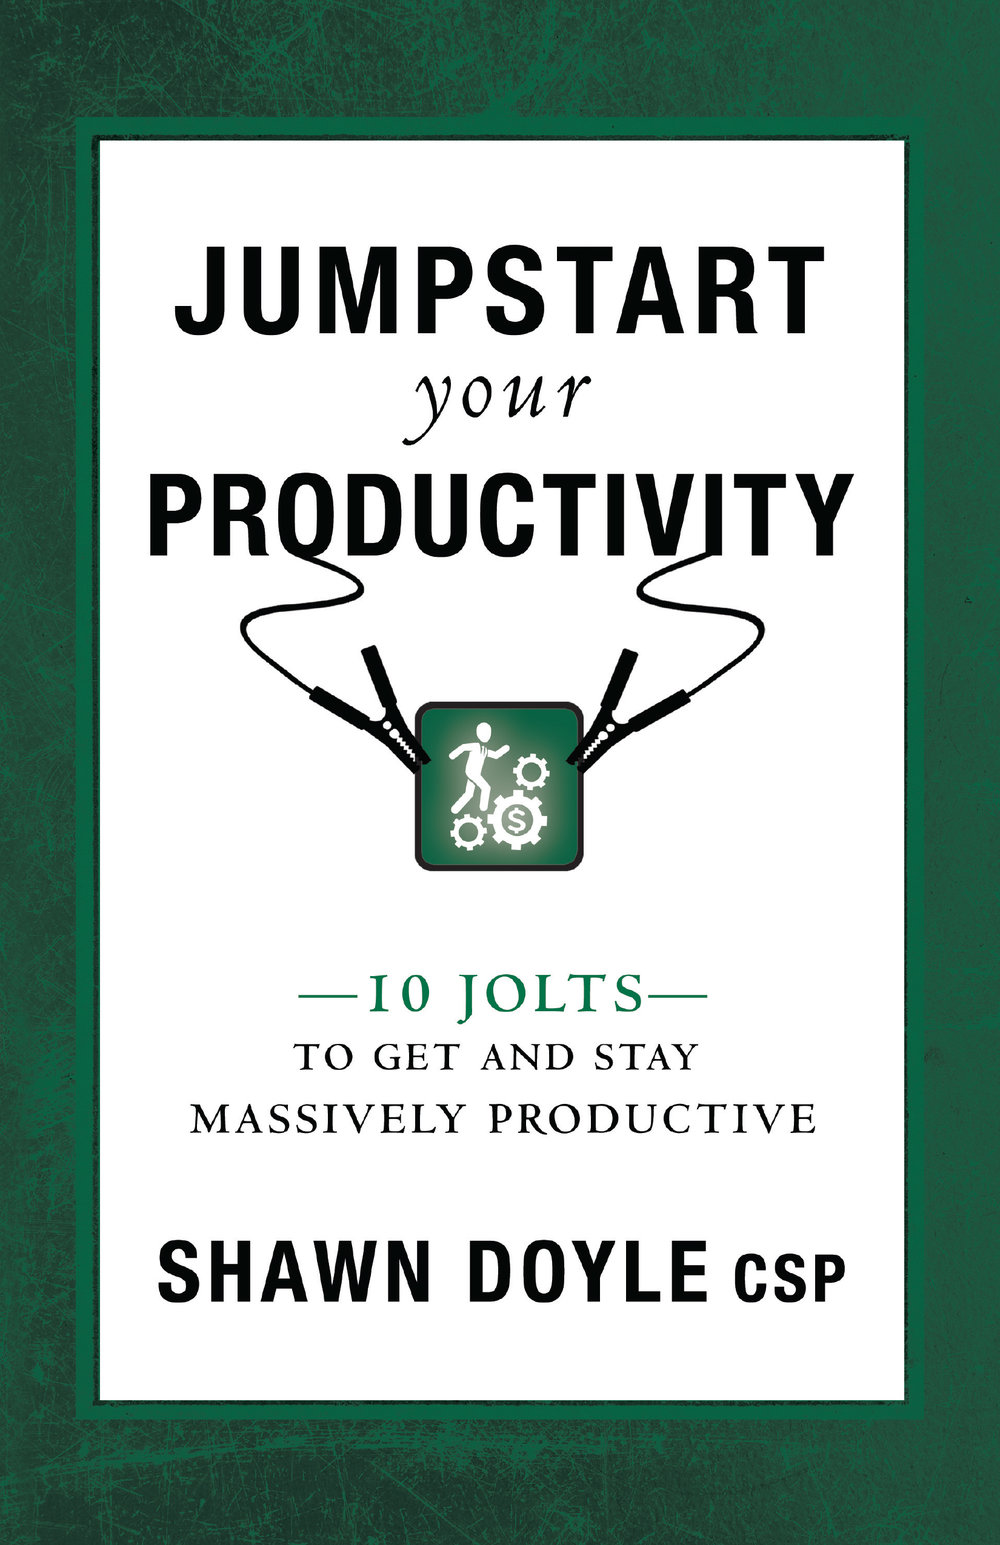 Jumpstart Your Productivity  - By shawn doyle csp